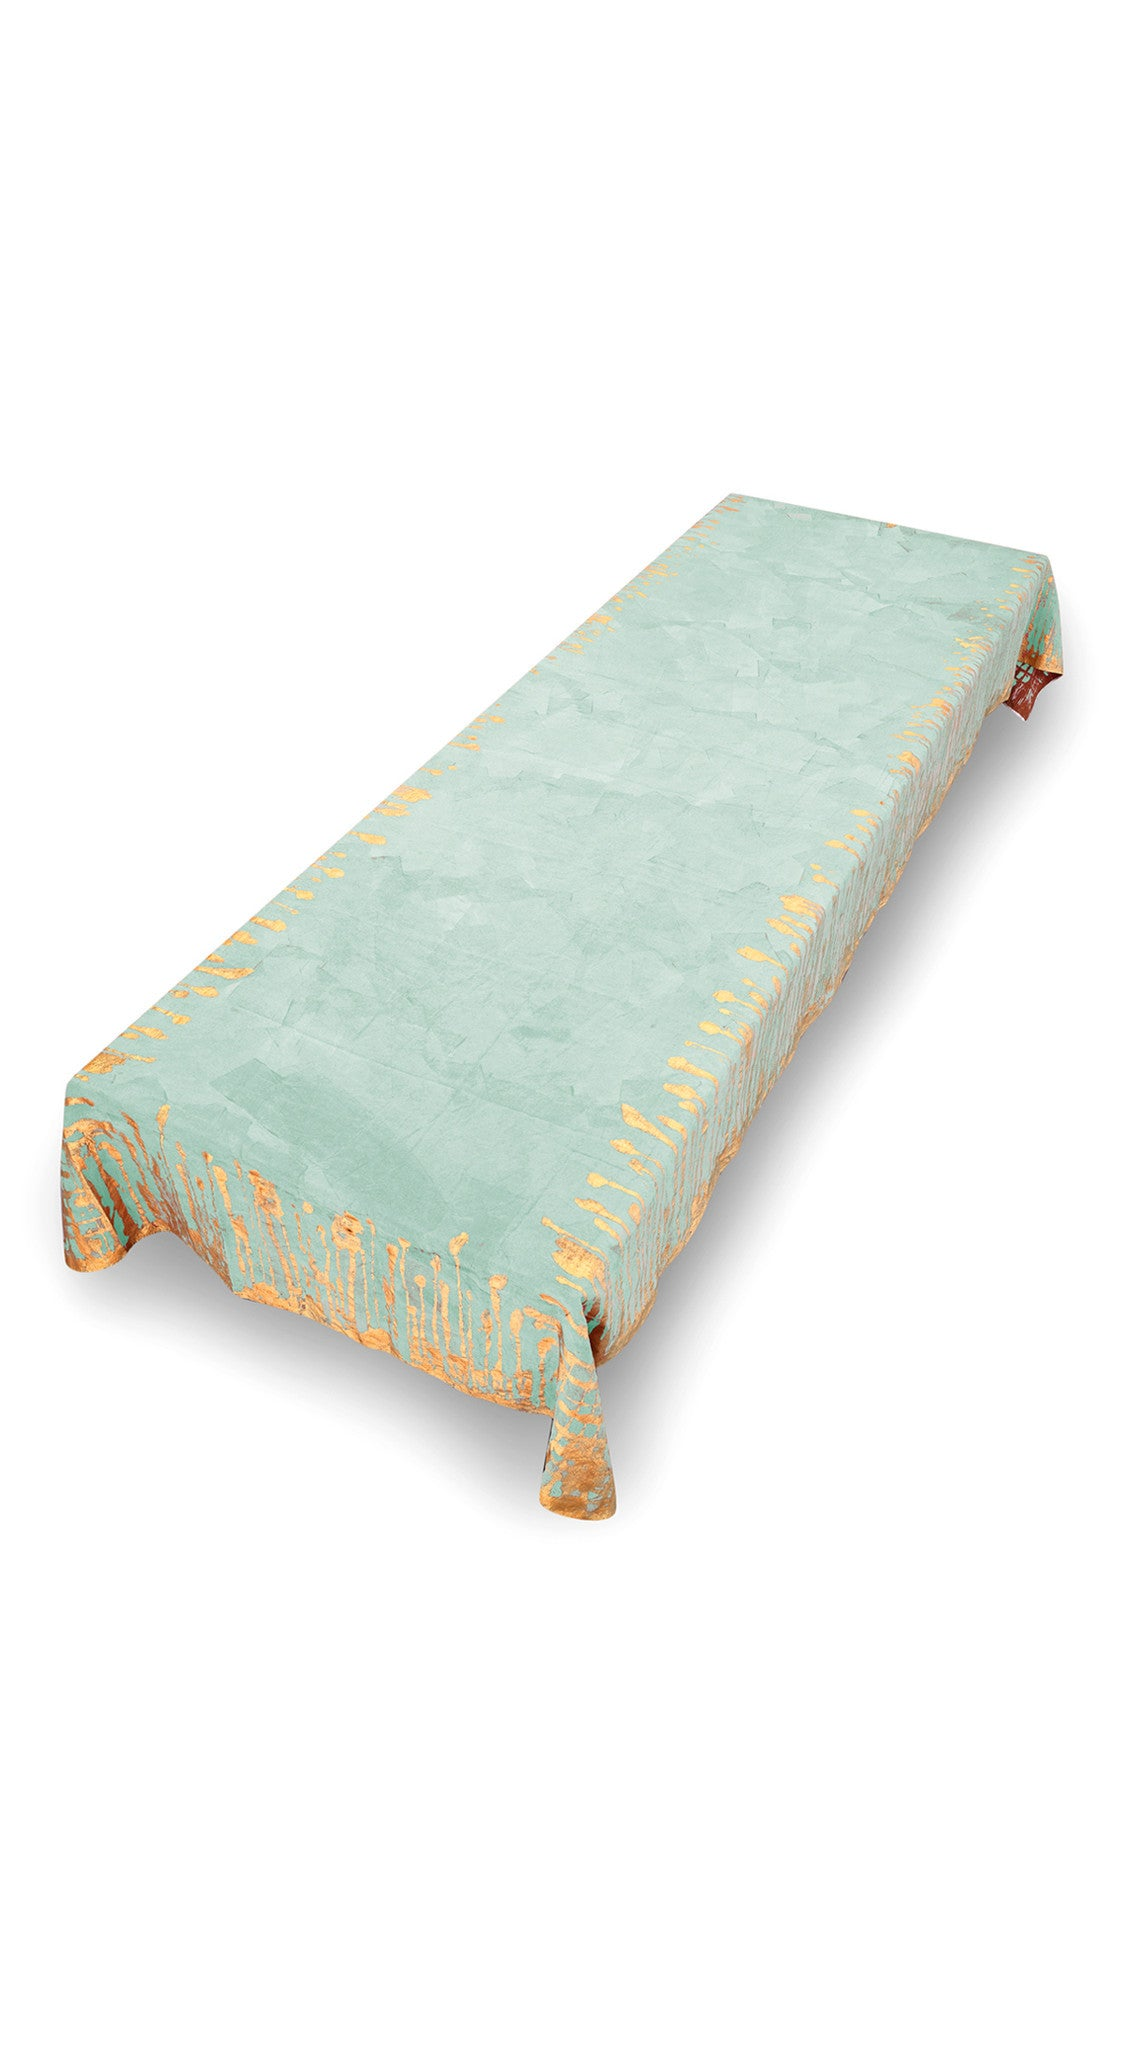 Ink Linen Tablecloth in Light Green with Gold Drips